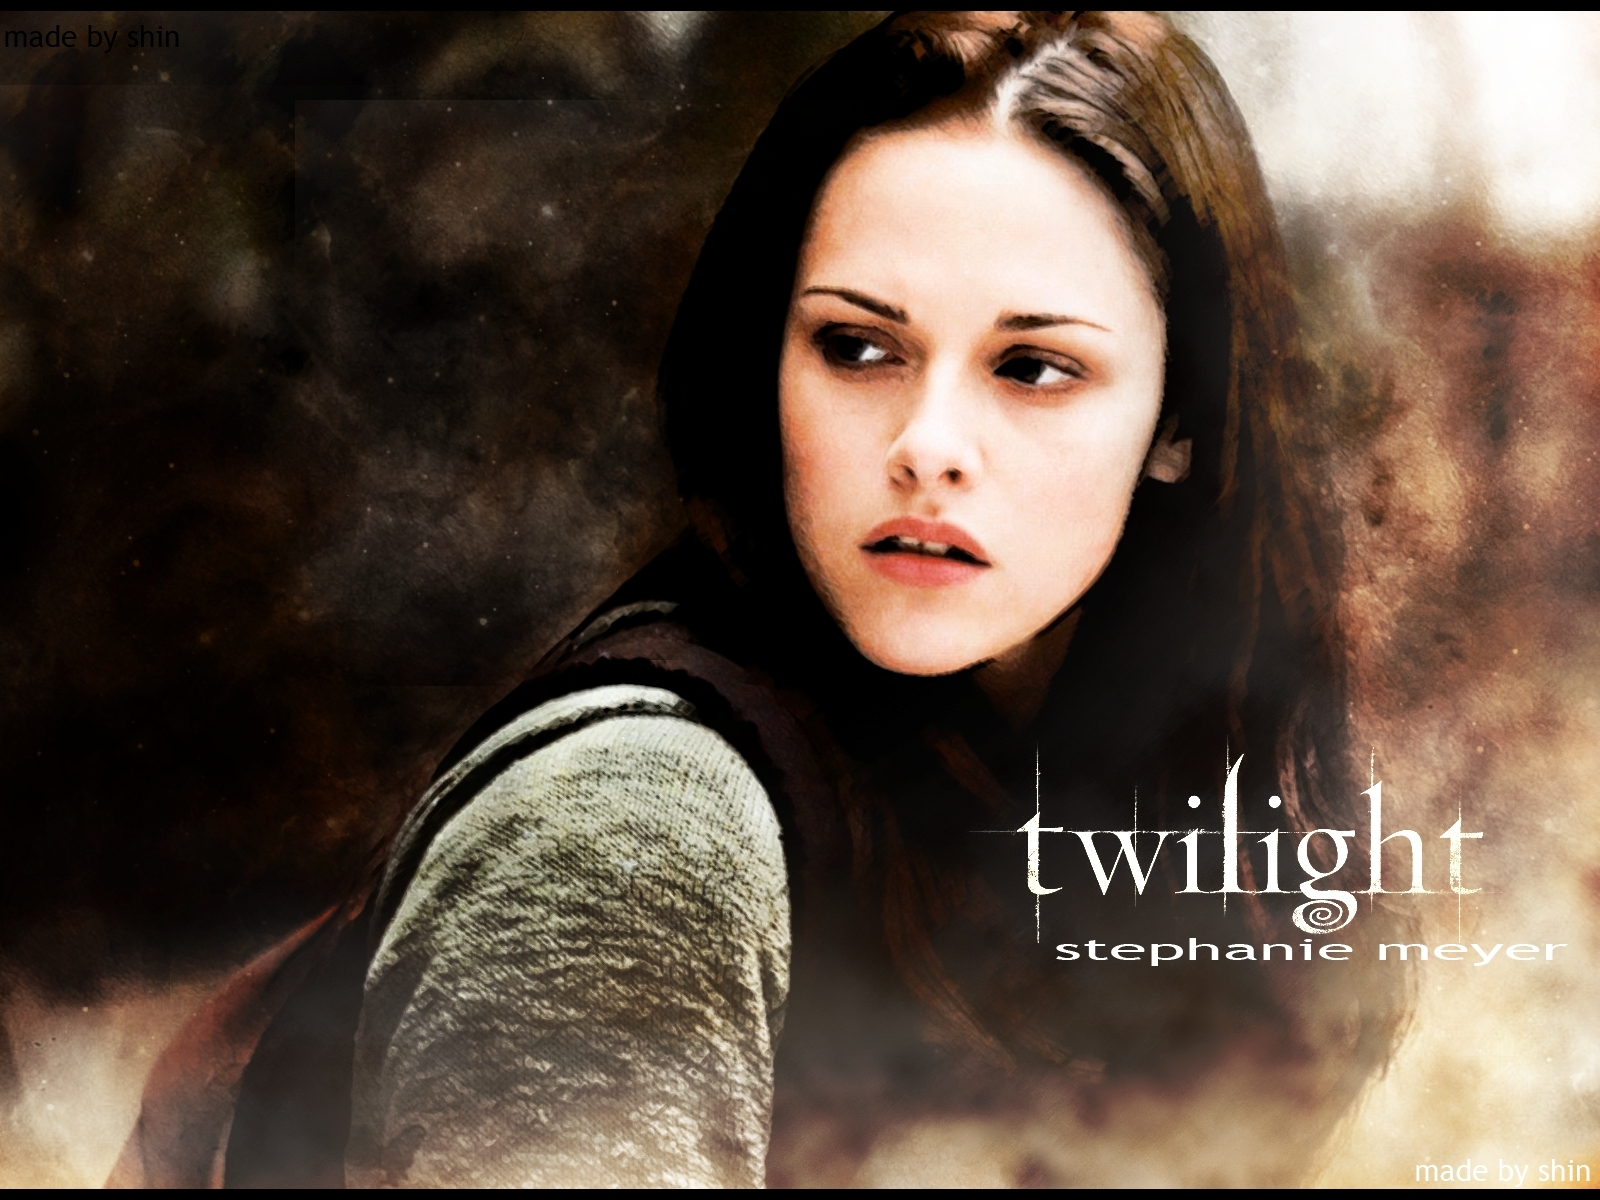 http://3.bp.blogspot.com/-mWjAShPlzQM/TY9Y3AdHpyI/AAAAAAAAAe8/S0p3iyOuDYM/s1600/Wallpaper-of-twilight-Bella-kristern-stewart-fan-made-robert-pattinson-and-kristen-stewart-8898593-1600-1200.jpg